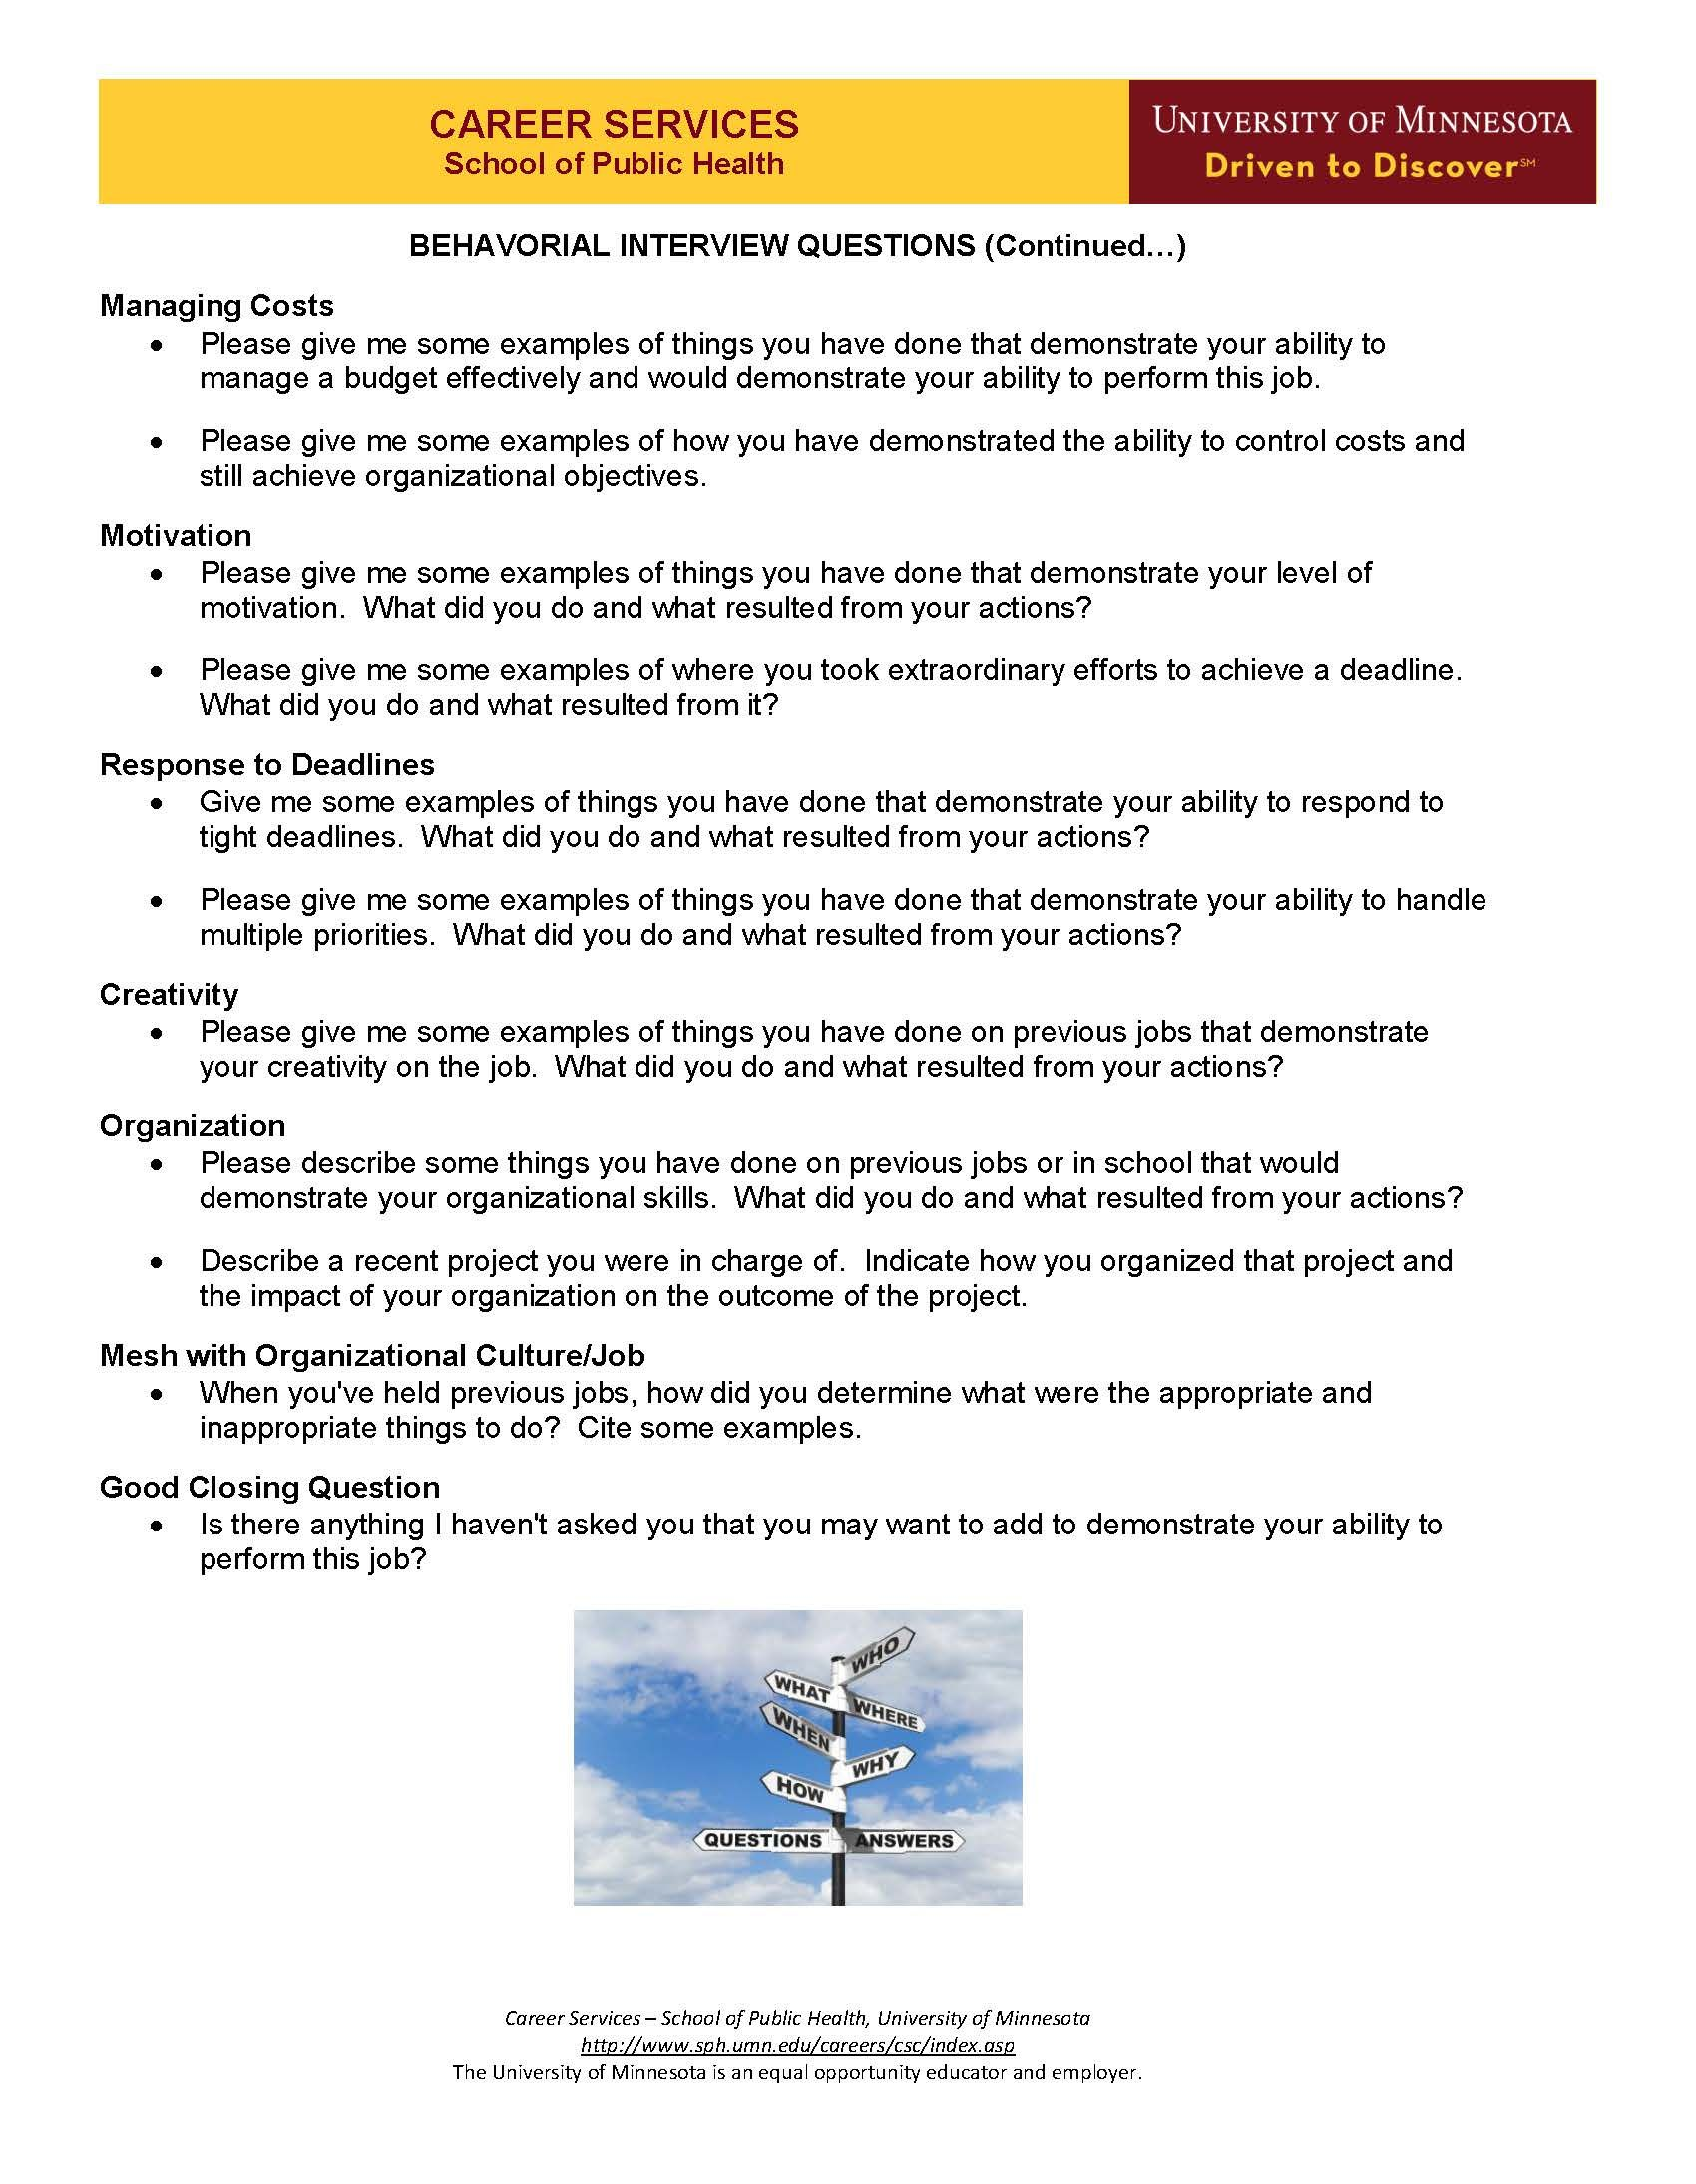 Behavioral Interview Questions Page 2